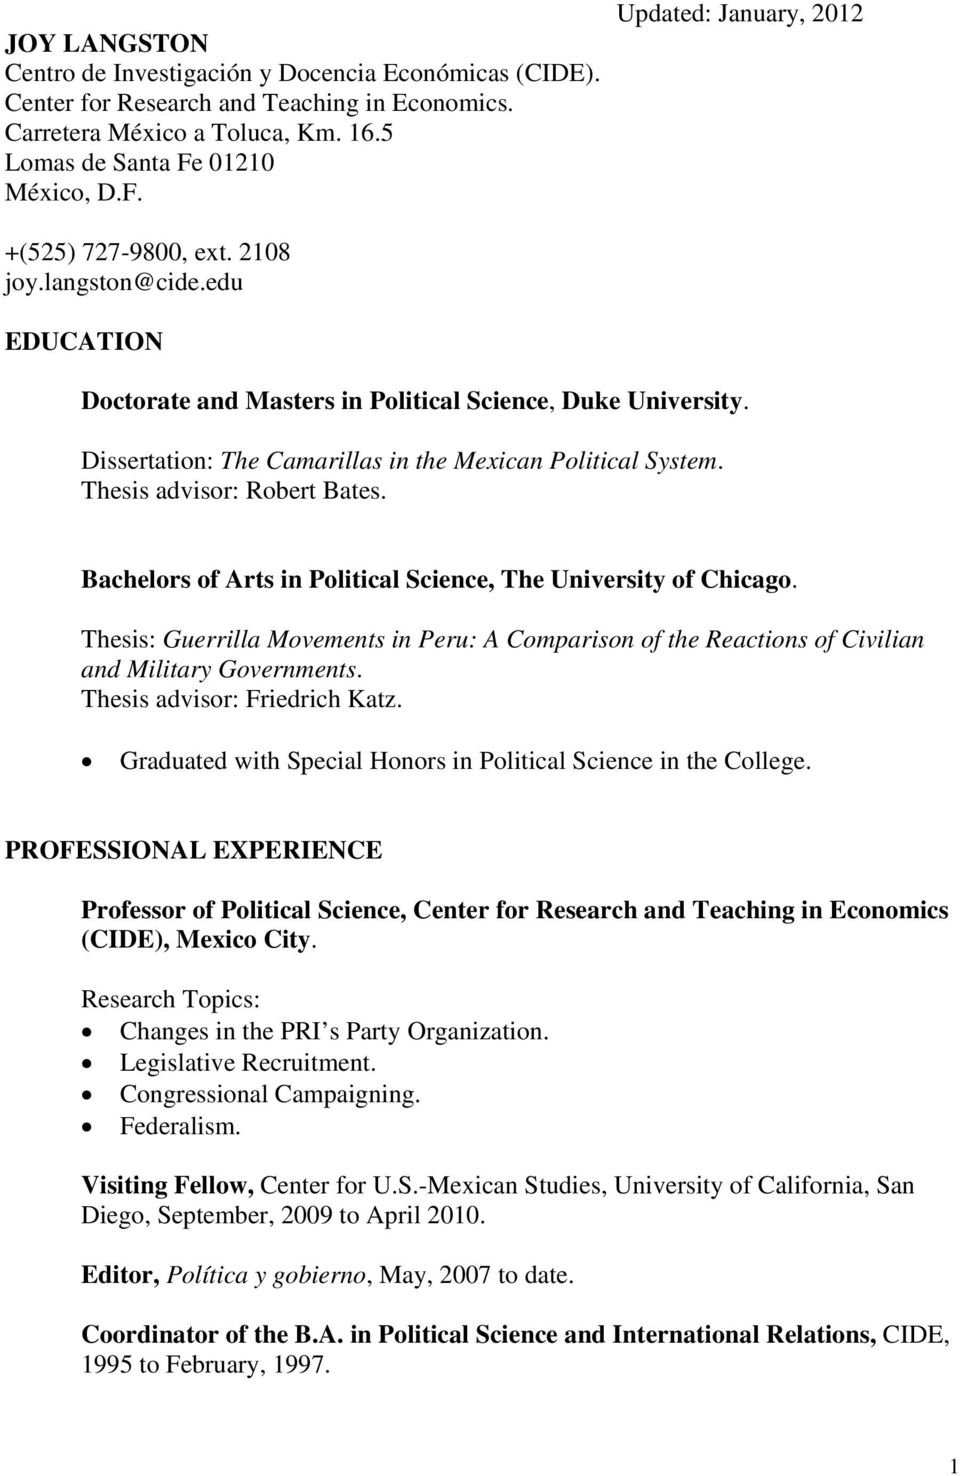 Dissertation: The Camarillas in the Mexican Political System. Thesis advisor: Robert Bates. Bachelors of Arts in Political Science, The University of Chicago.